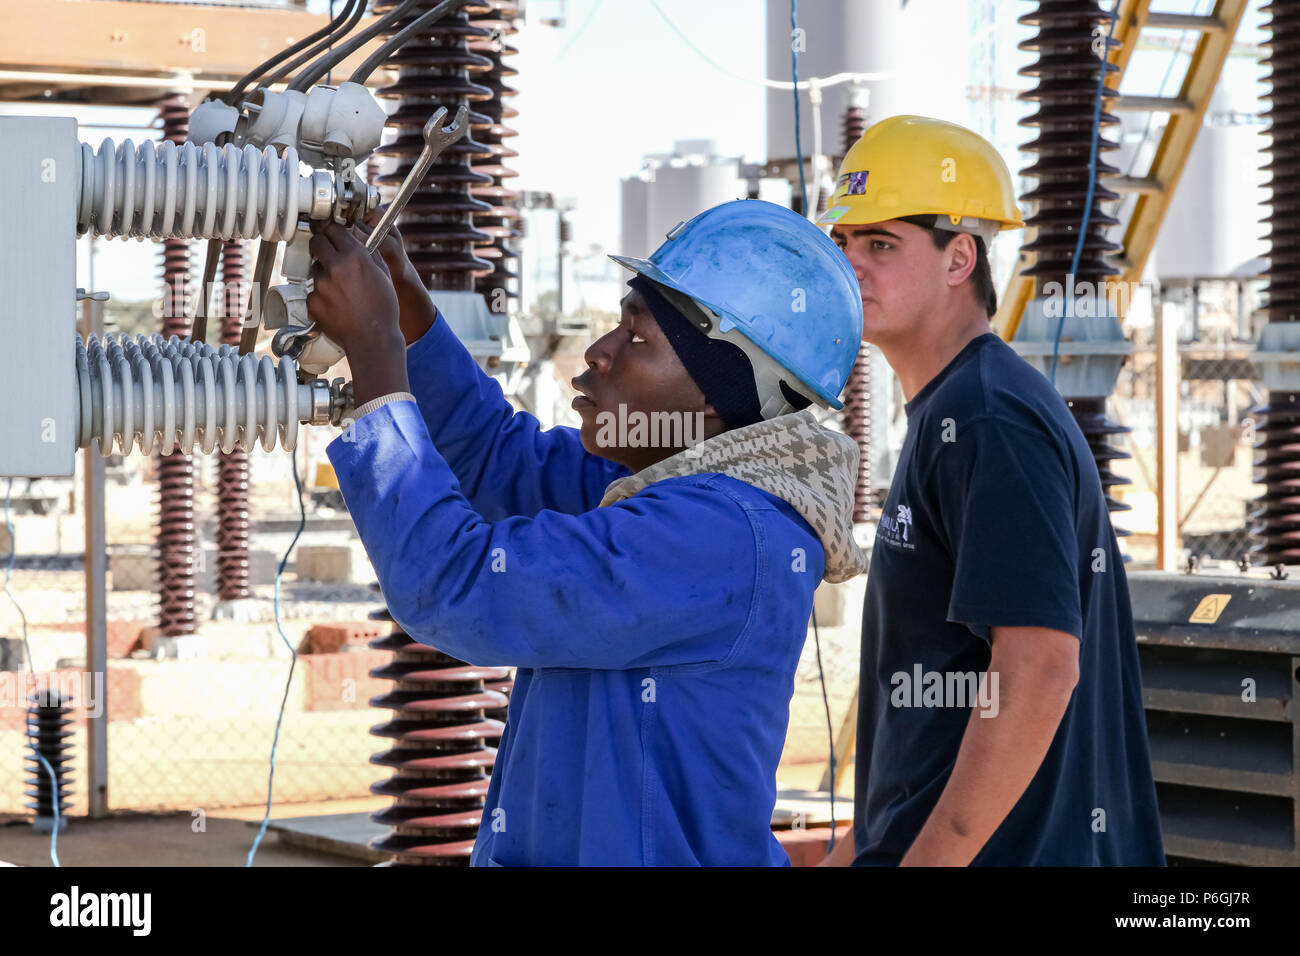 Johannesburg, South Africa, 04/11/2012, Electricians working on high voltage power lines. Highly skilled workmen servicing the electricity gri Stock Photo